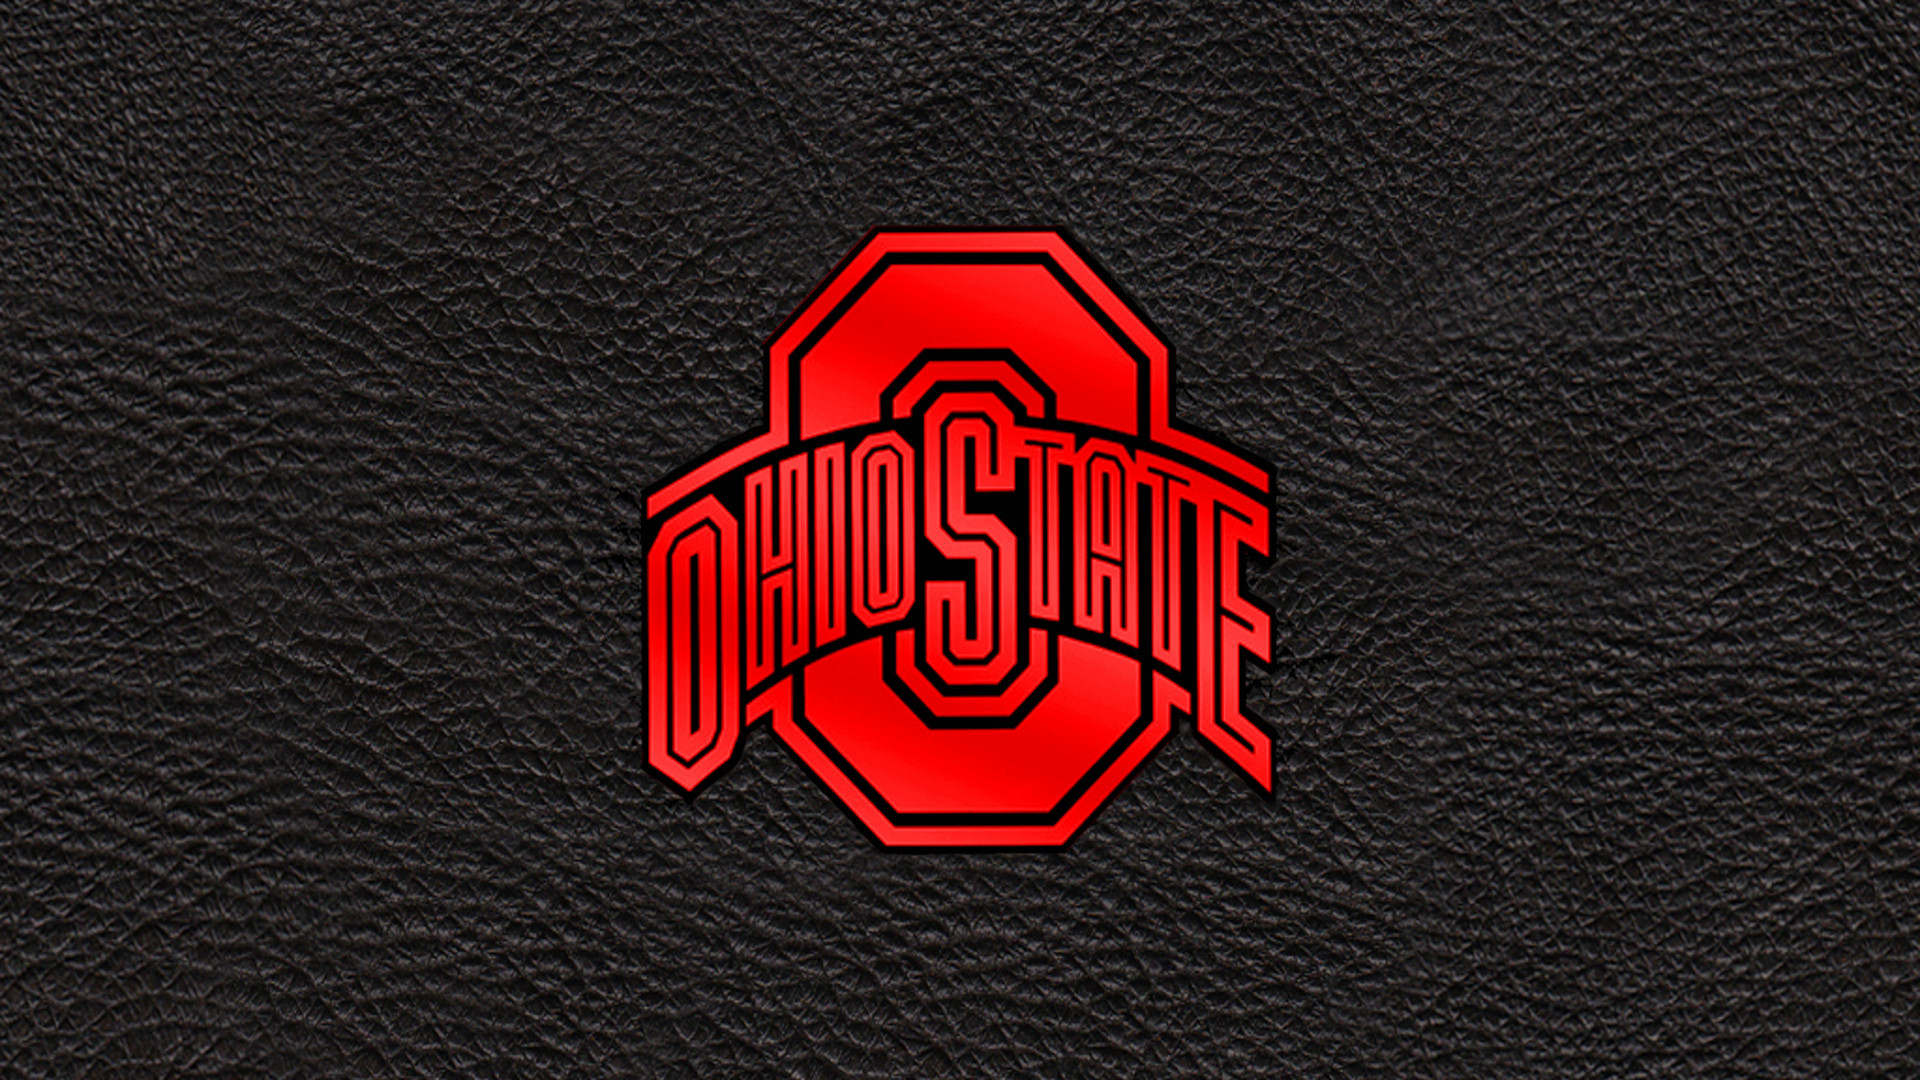 1920x1080  osu wallpaper download ohio state football desktop wallpapers  high definition monitor download free amazing background photos artwork  1920×1080 ...